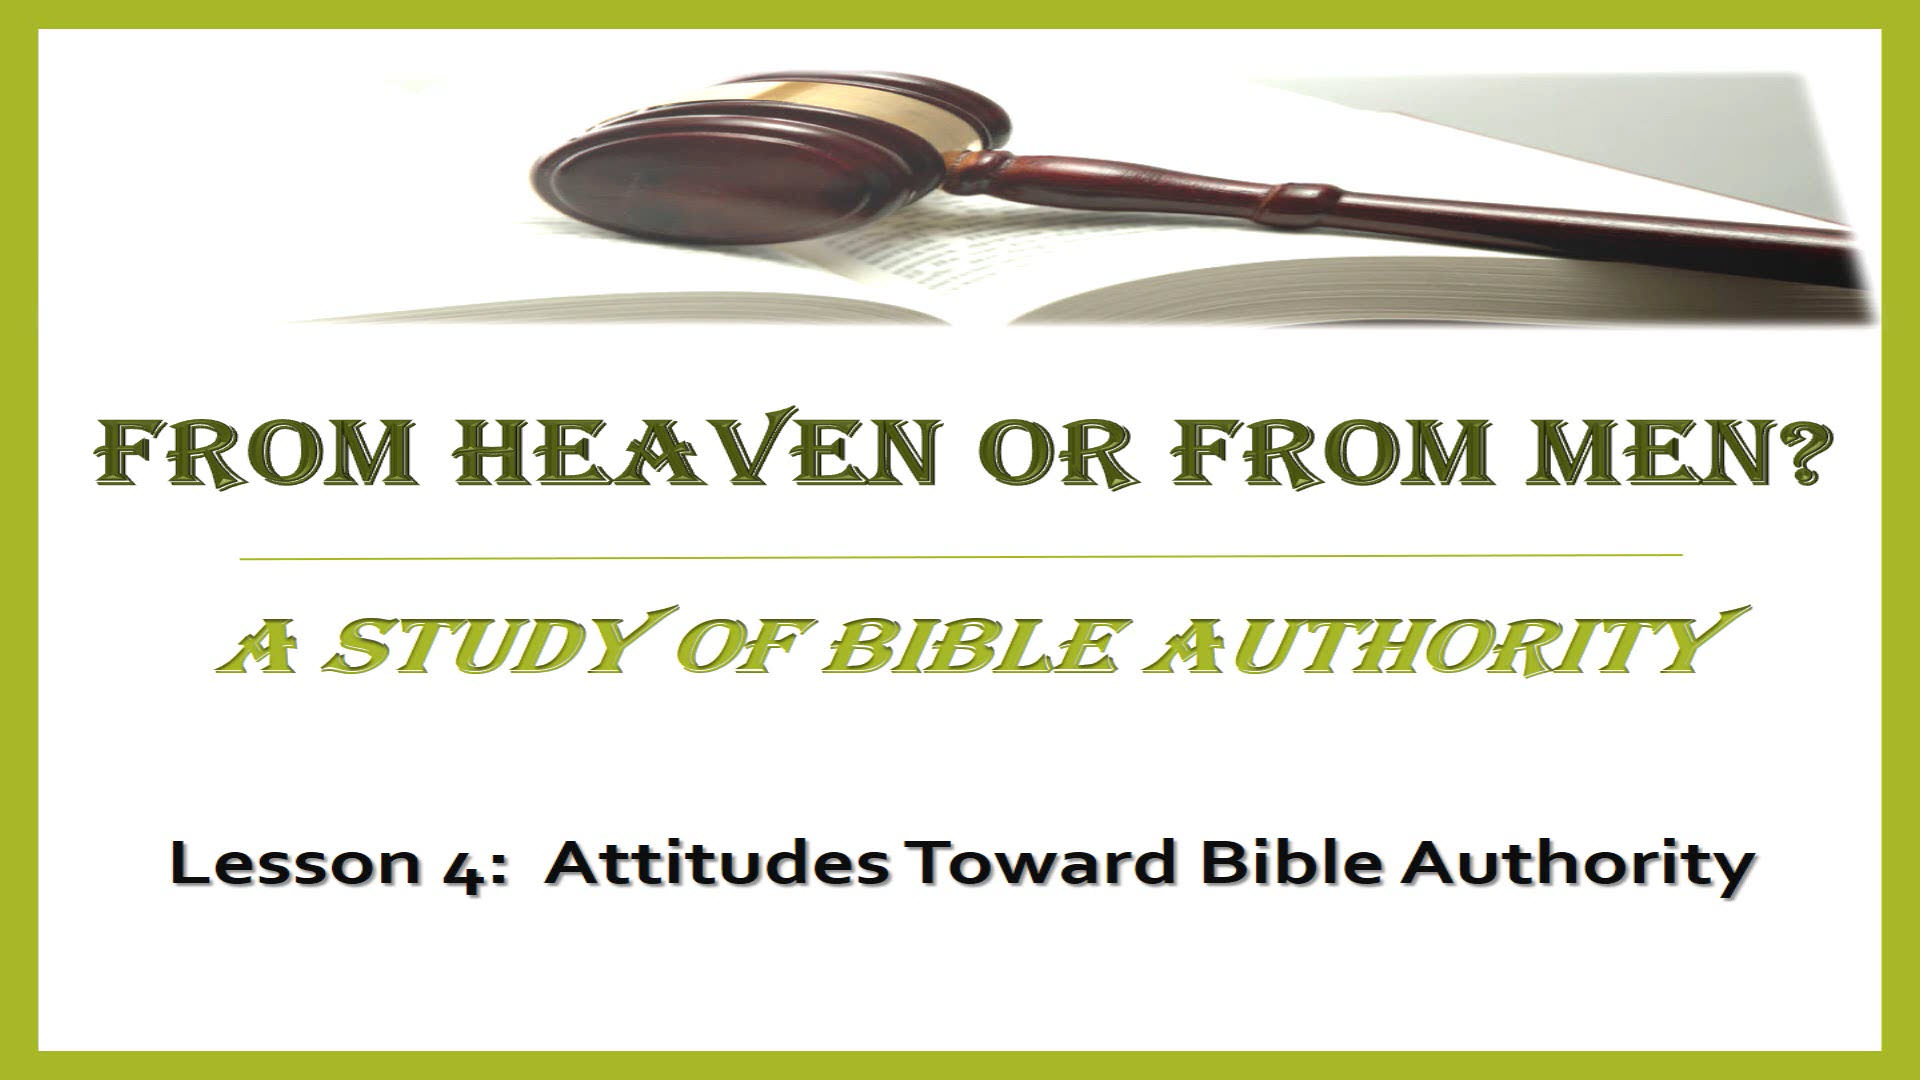 From Heaven Or From Men? (Lesson 4:  Attitudes Toward Bible Authority)